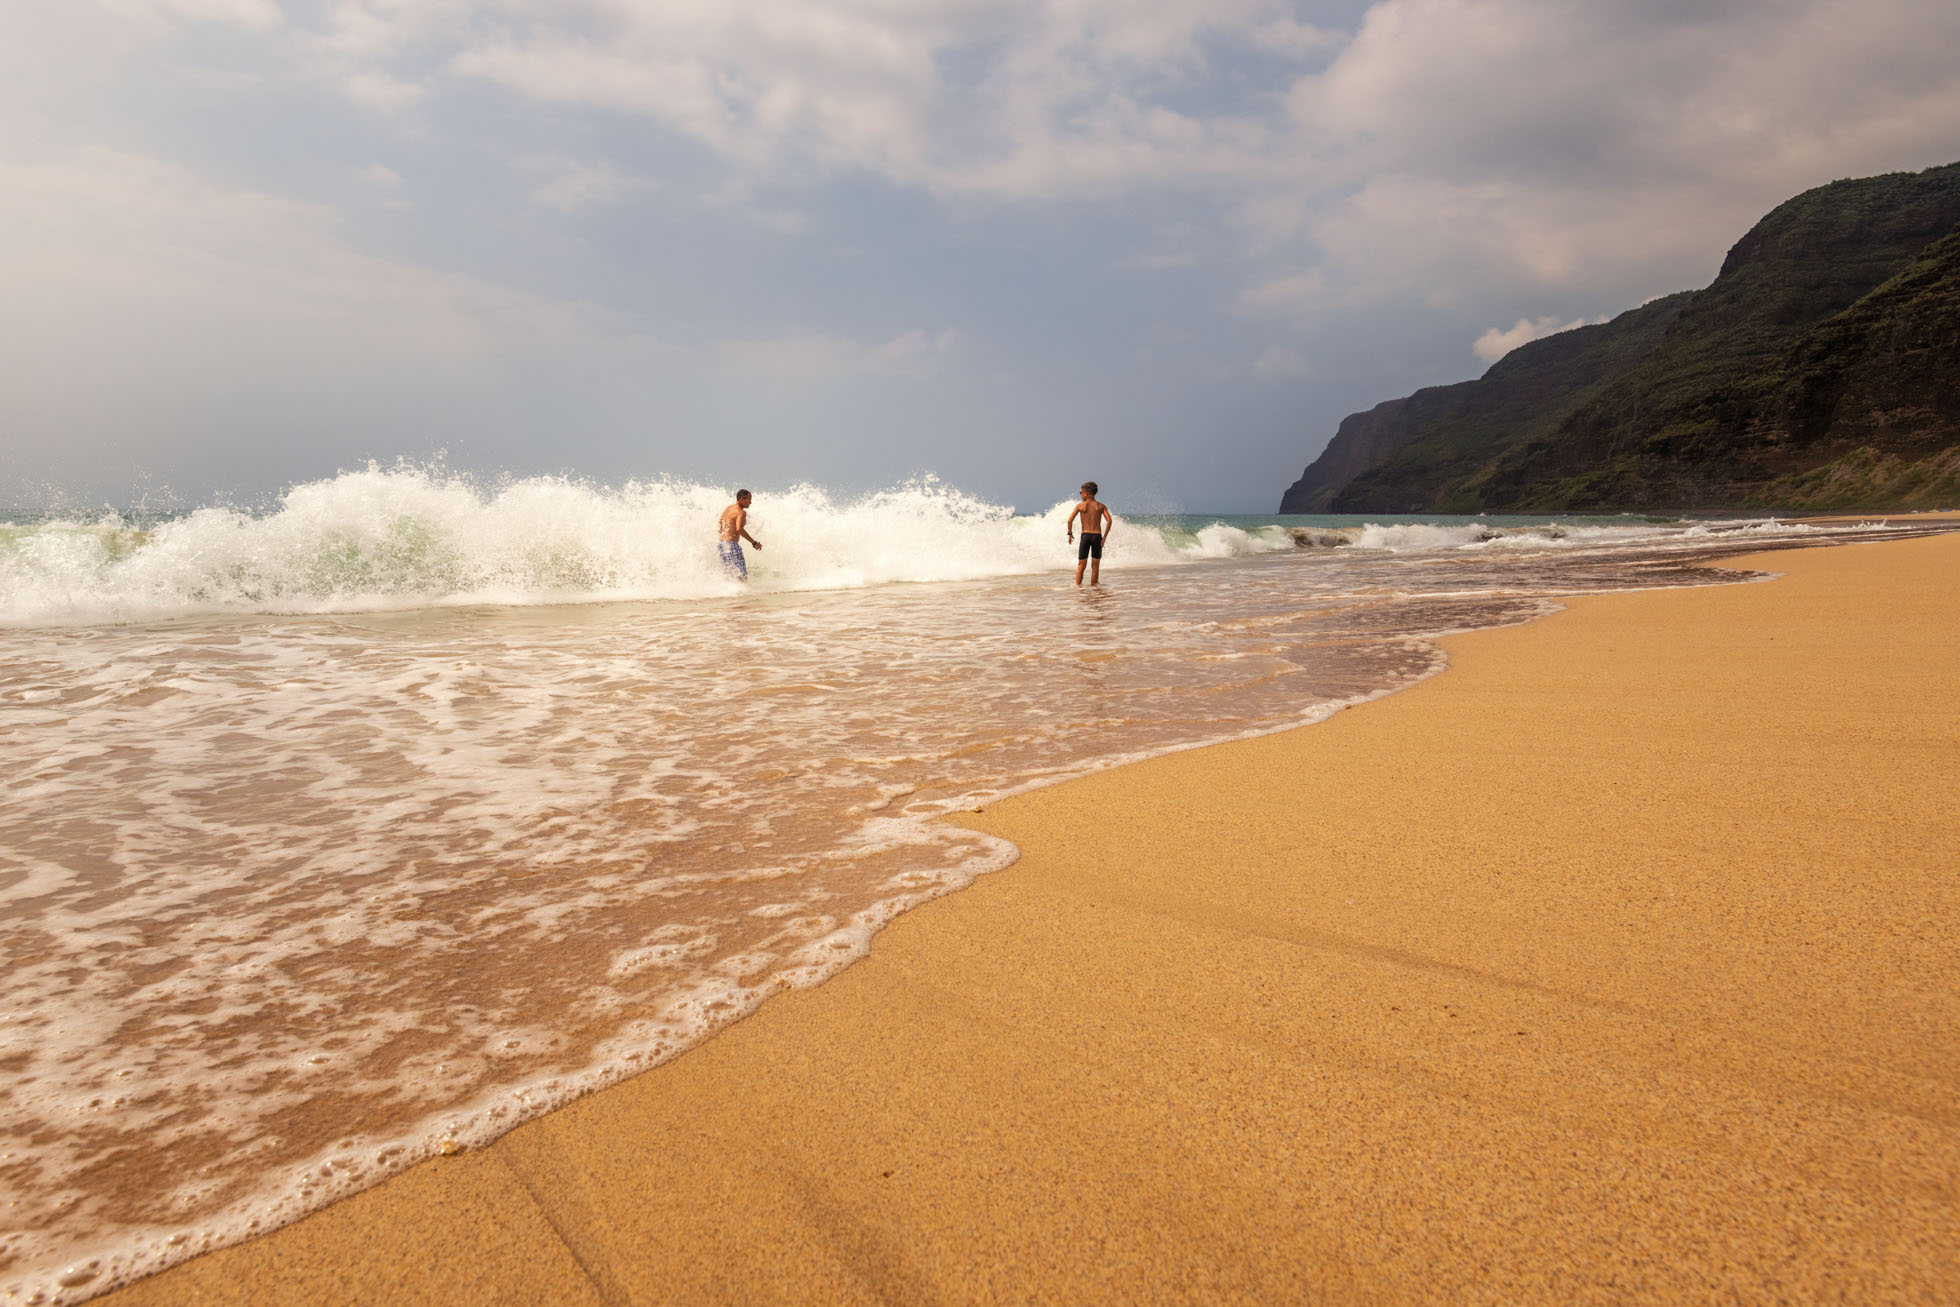 My husband and youngest son in the waves in Kauai